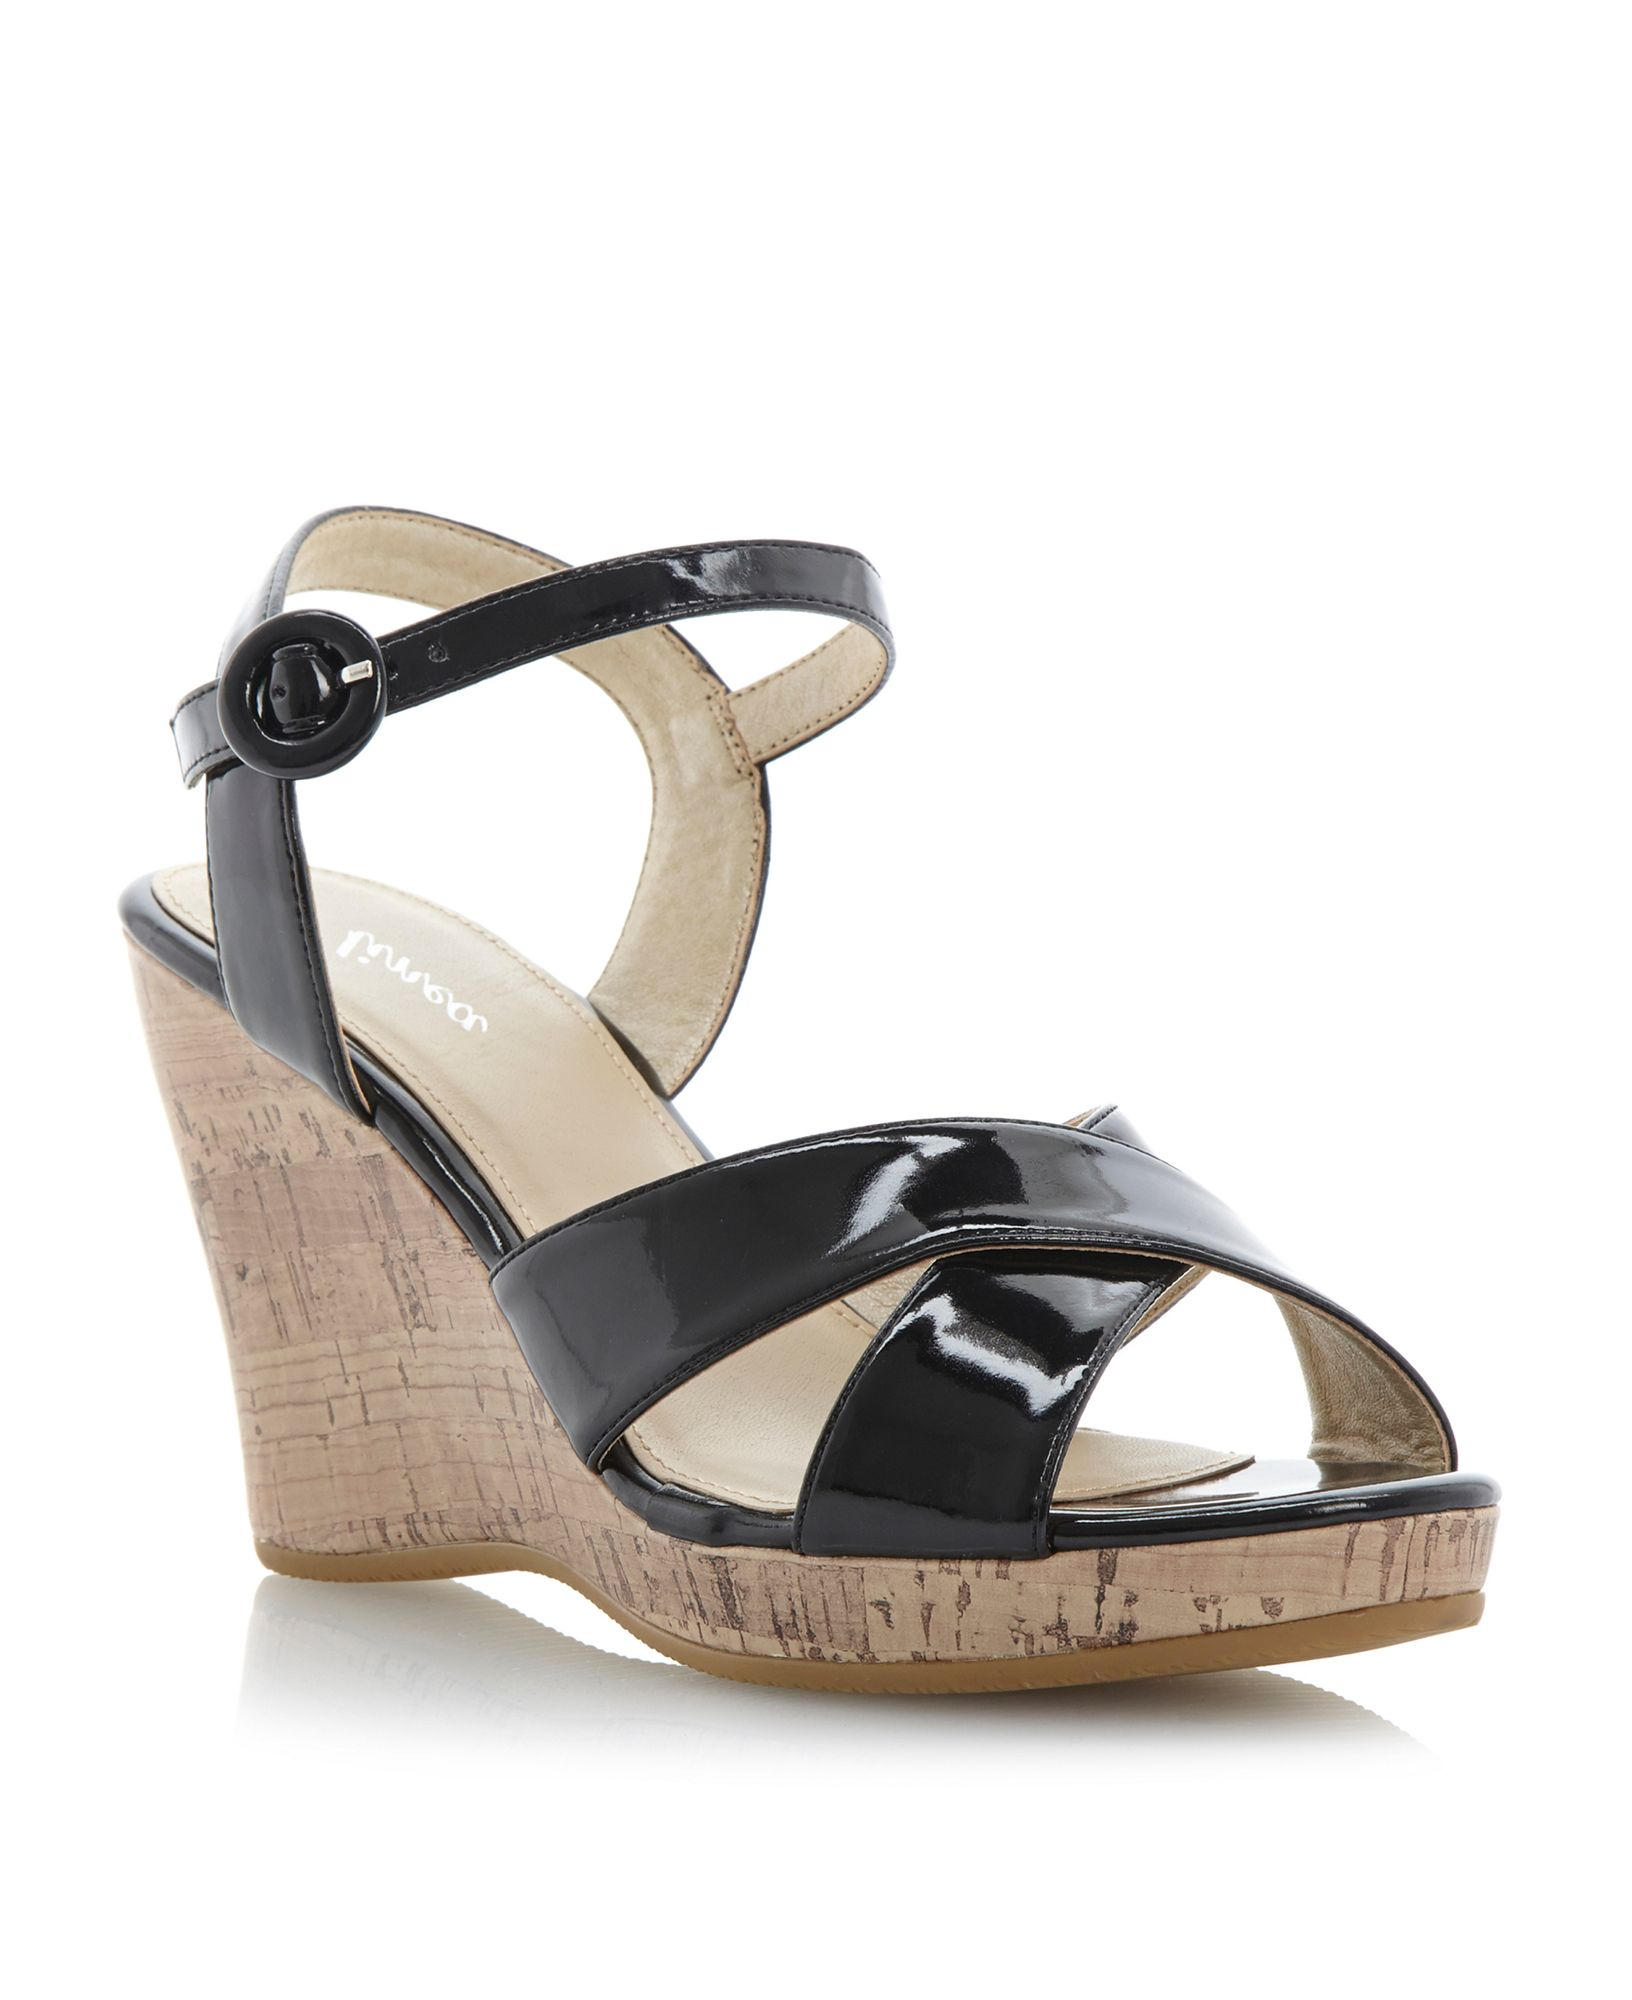 Product - Chinese Laundry Dance Party High Wedge Sandal - Black Suede. Product Image. Price $ 33 - $ Product Title. Chinese Laundry Dance Party High Wedge Sandal - Black Suede. Product - Womens Black Wedge Sandals Gothic Punk Slides Star Cutout 5 1/4 Inch Heels Shoe. Reduced Price. Product Image.